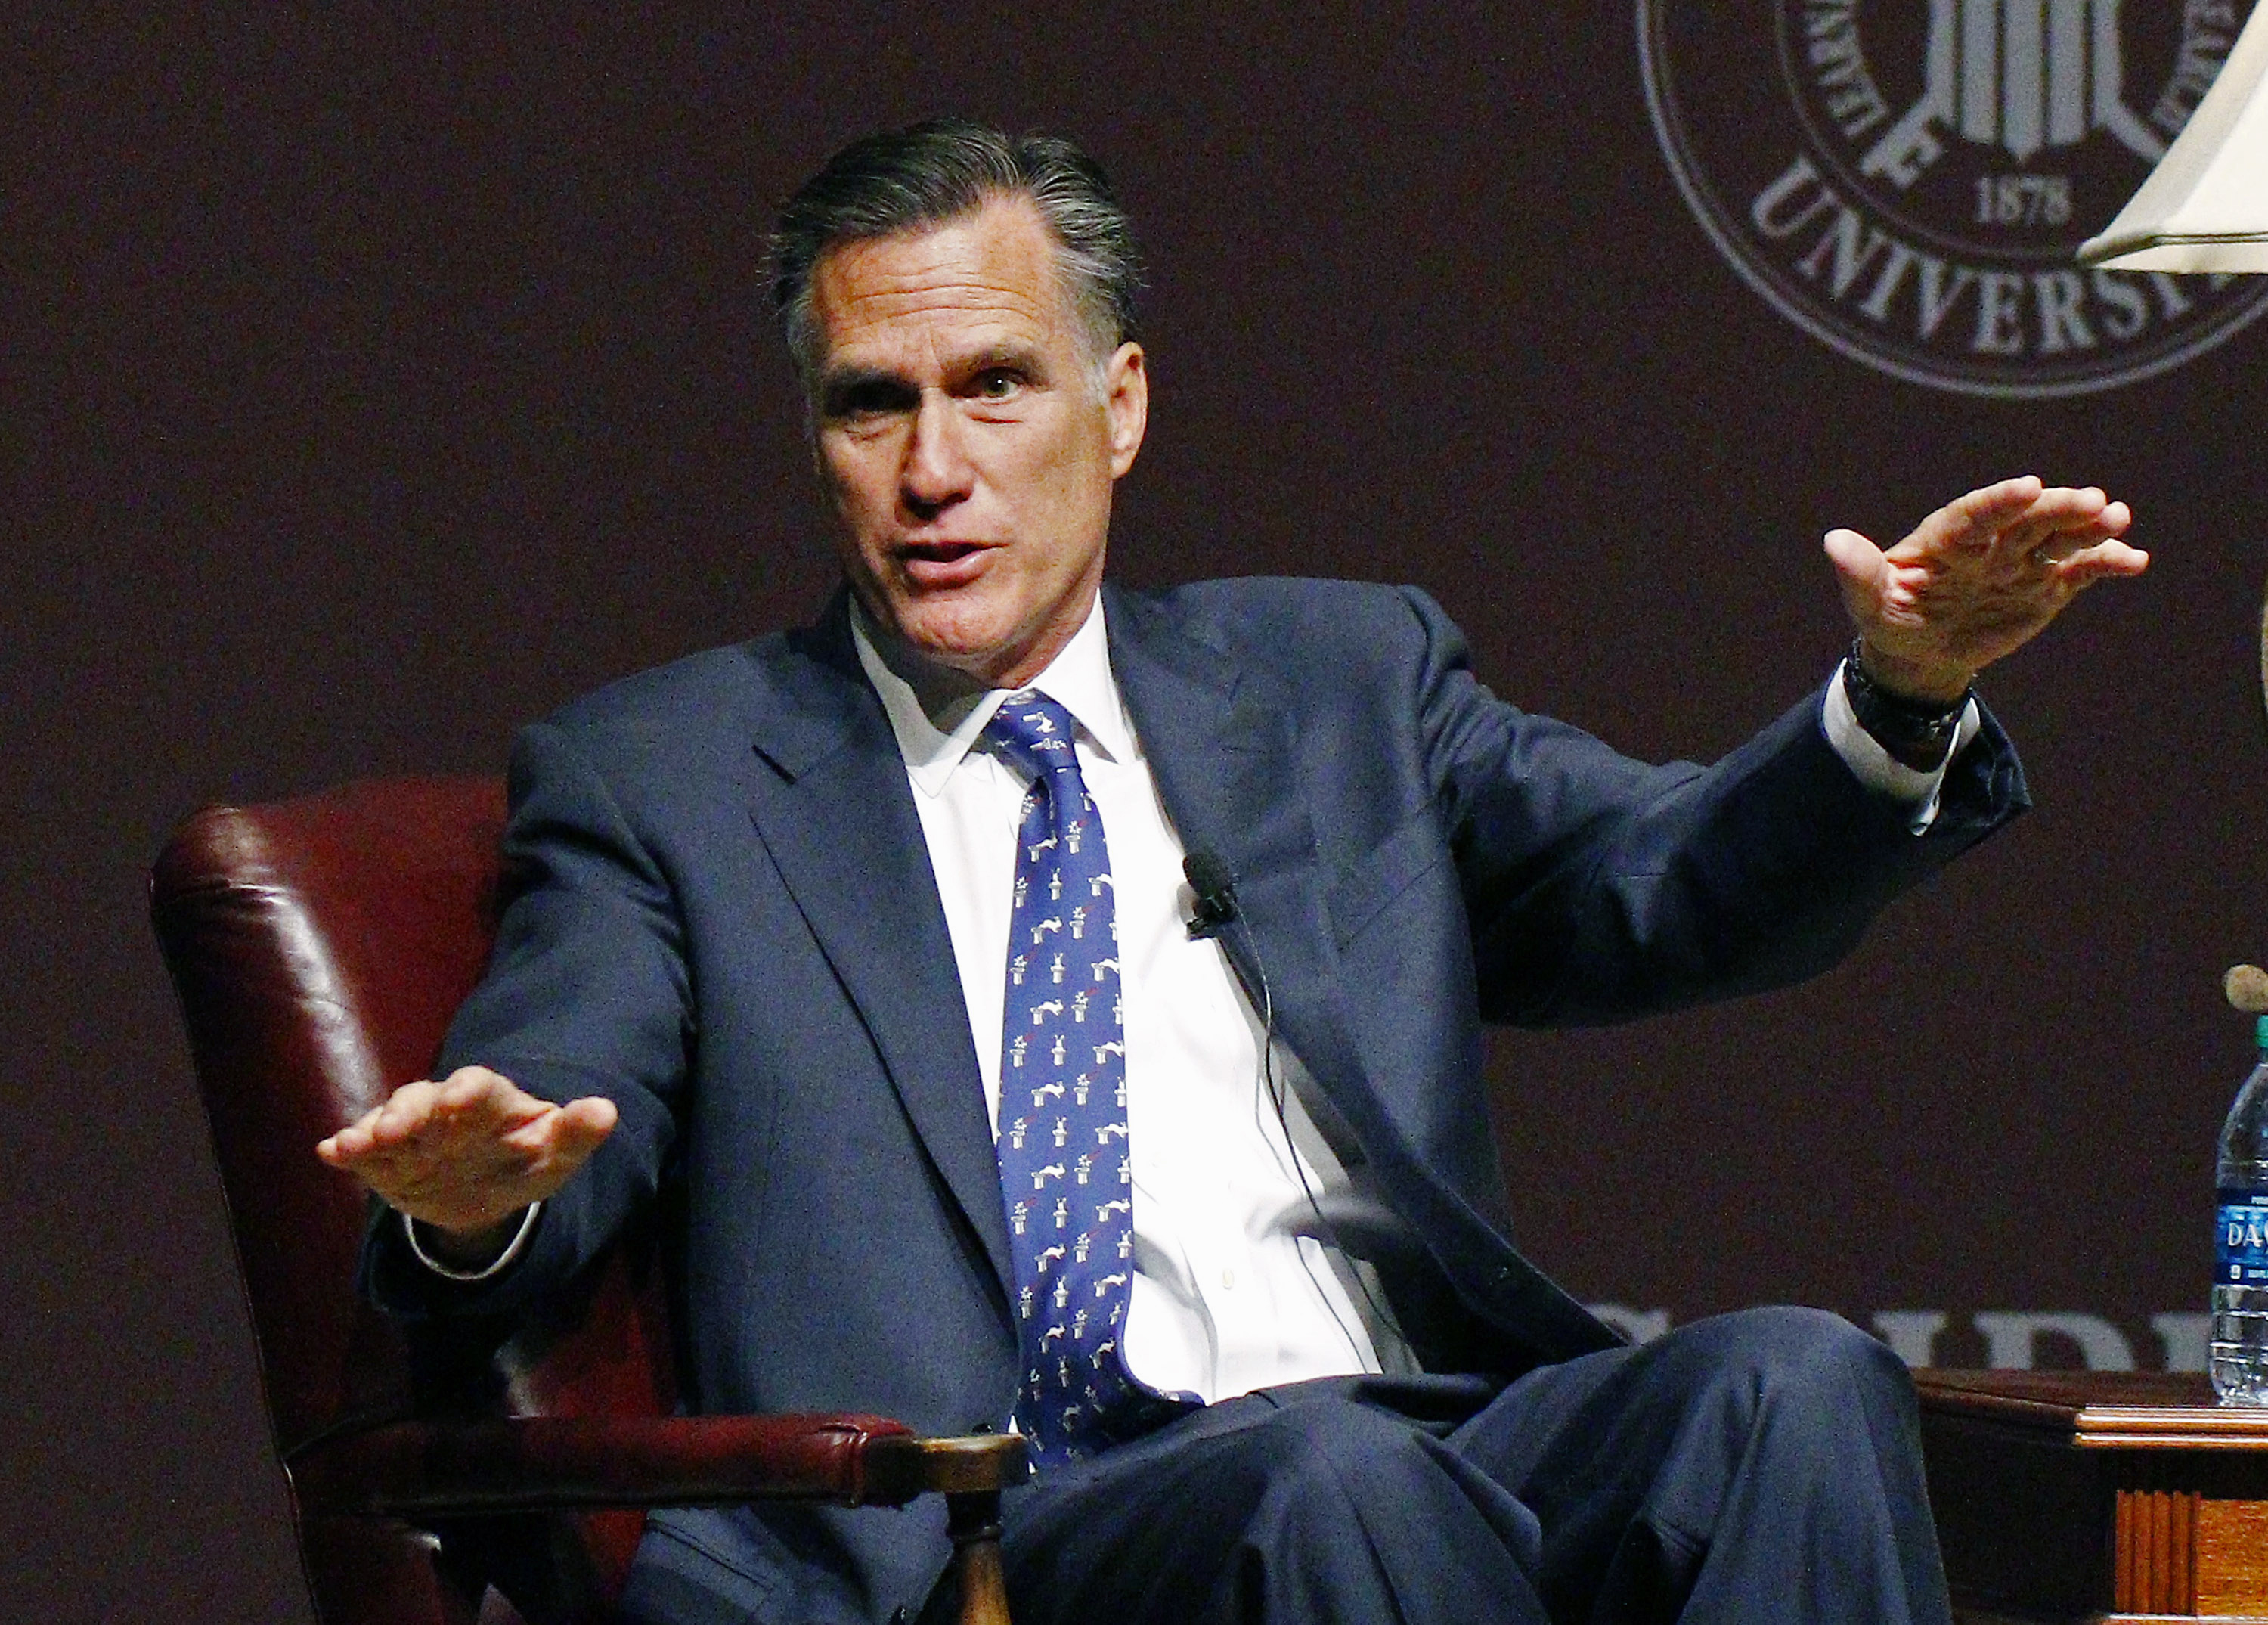 In this Jan. 28, 2015 file photo, former GOP presidential candidate Mitt Romney speaks at Mississippi State University in Starkville, Miss. (AP Photo/Rogelio V. Solis)